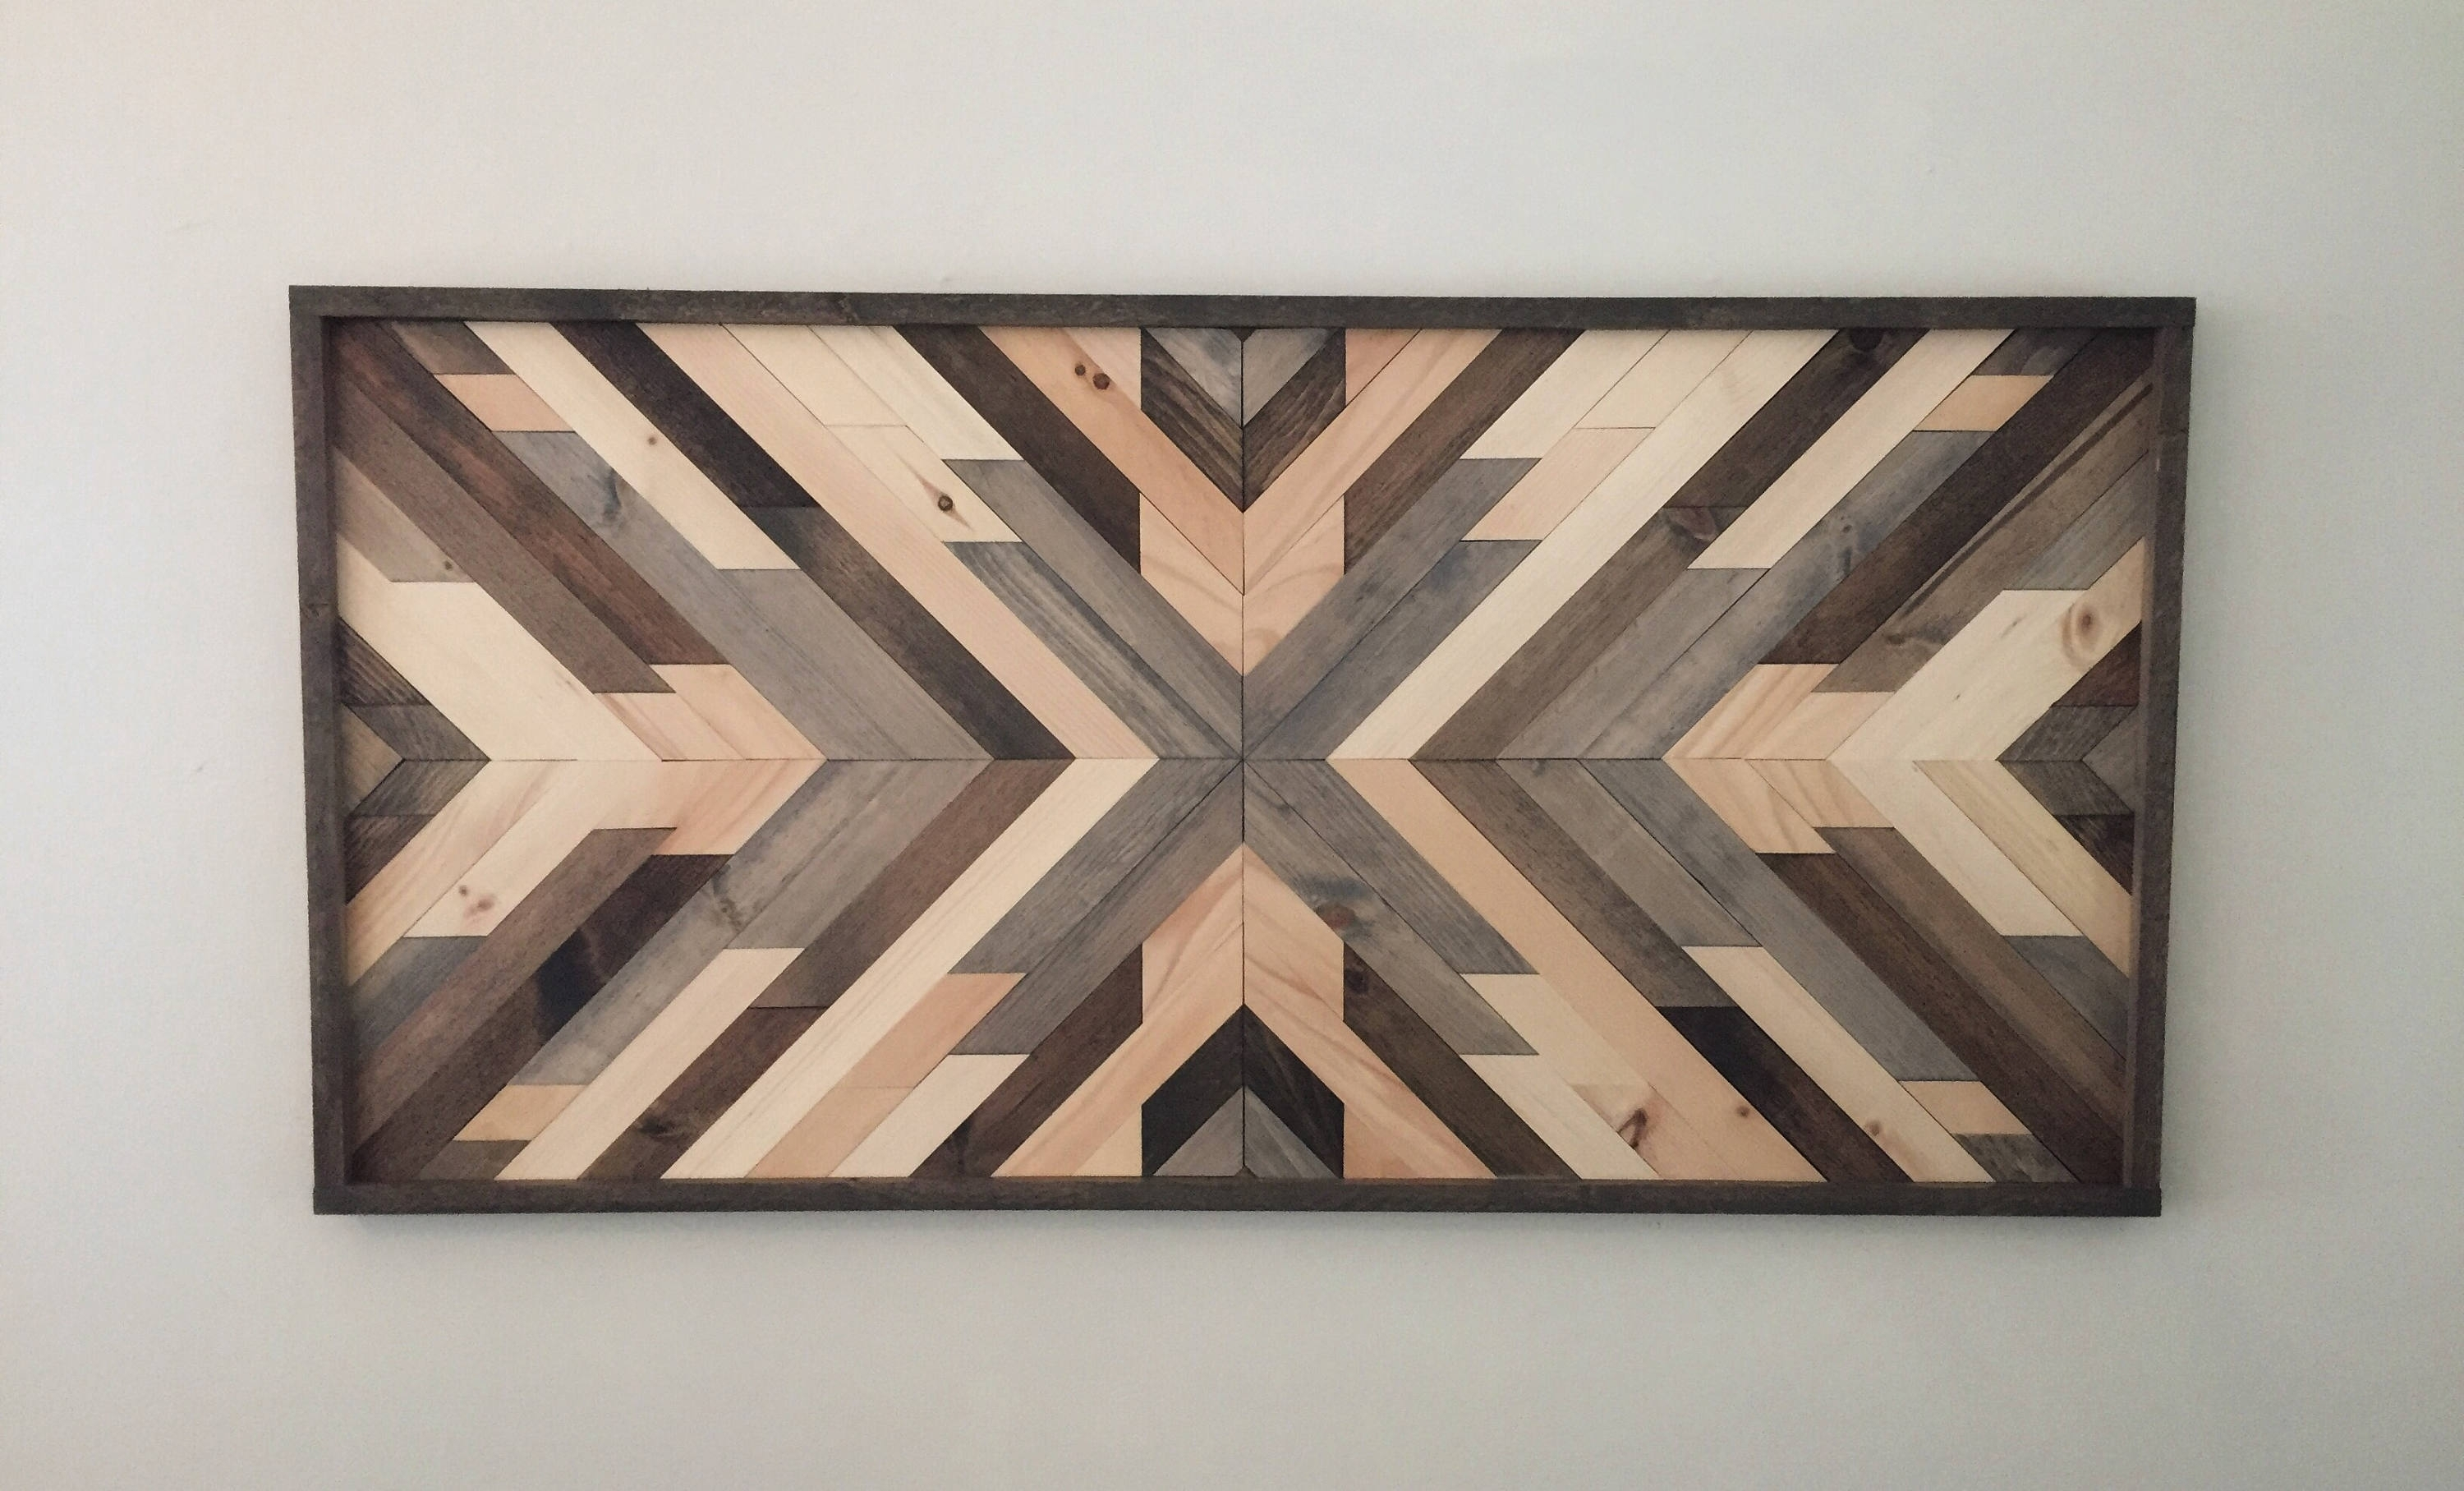 Reclaimed Wood Wall Art Wood Art Wall Decor Wood Decor, Wood Wall Throughout Most Popular Wood Art Wall (View 6 of 15)